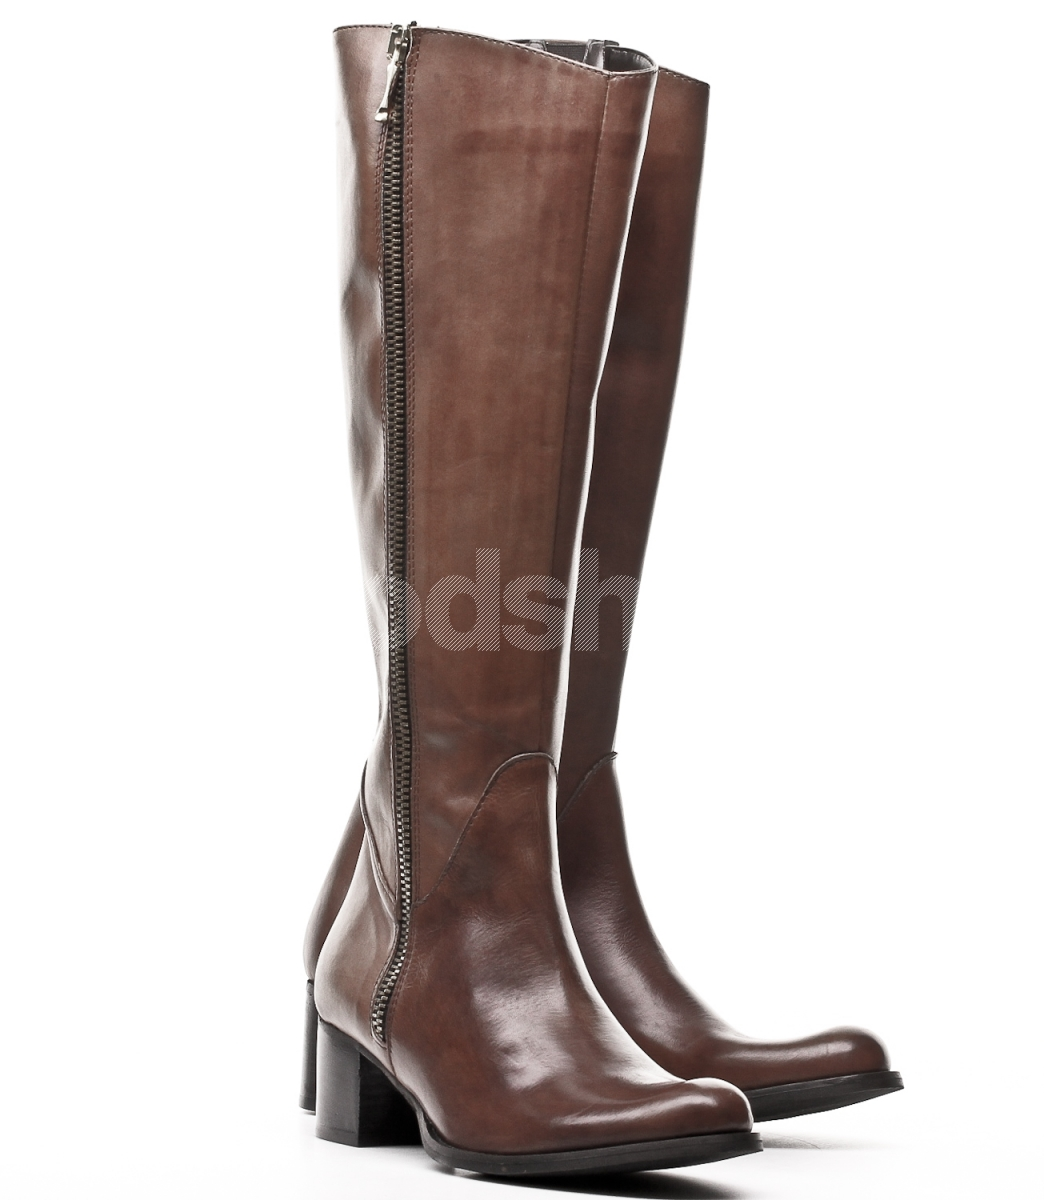 venezia s brown leather boots goodshoes pl